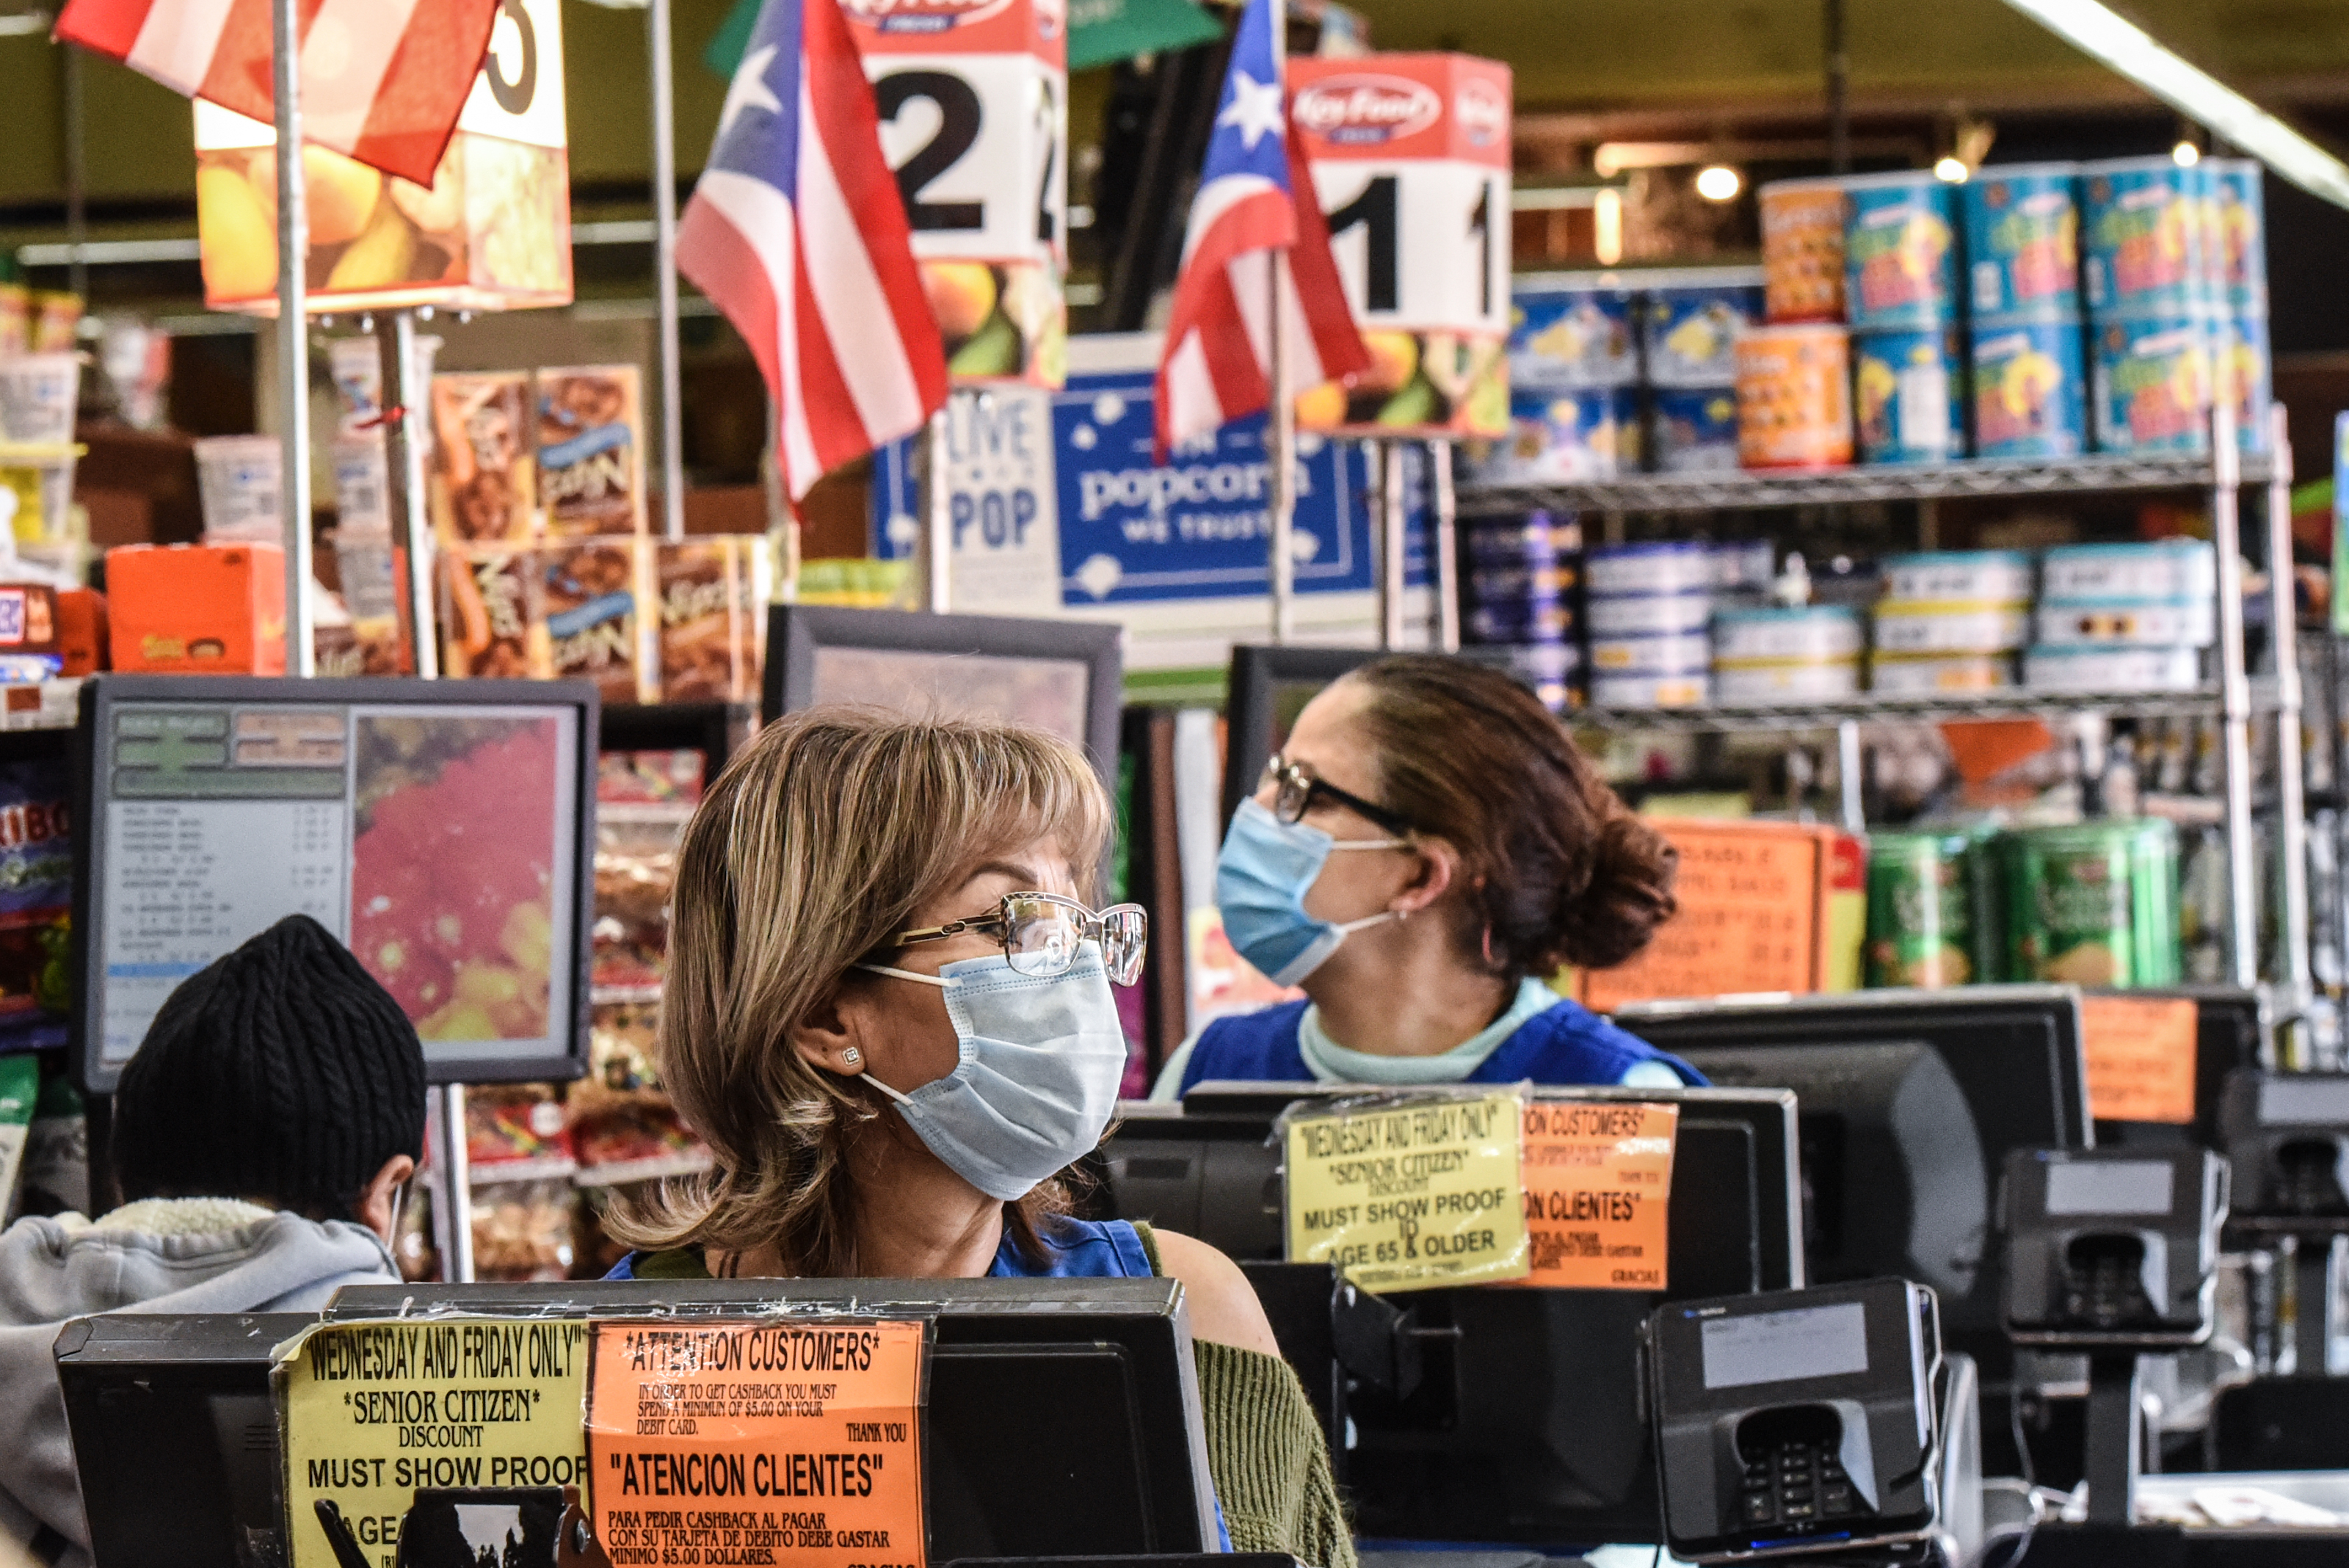 NEW YORK, NY - APRIL 02 : Cashiers wearing protective masks work in a grocery store in the Bushwick neighborhood of Brooklyn on April 2, 2020 in New York City. New York City is in its second week of lock down due to the coronavirus. (Photo by Stephanie Keith/Getty Images)